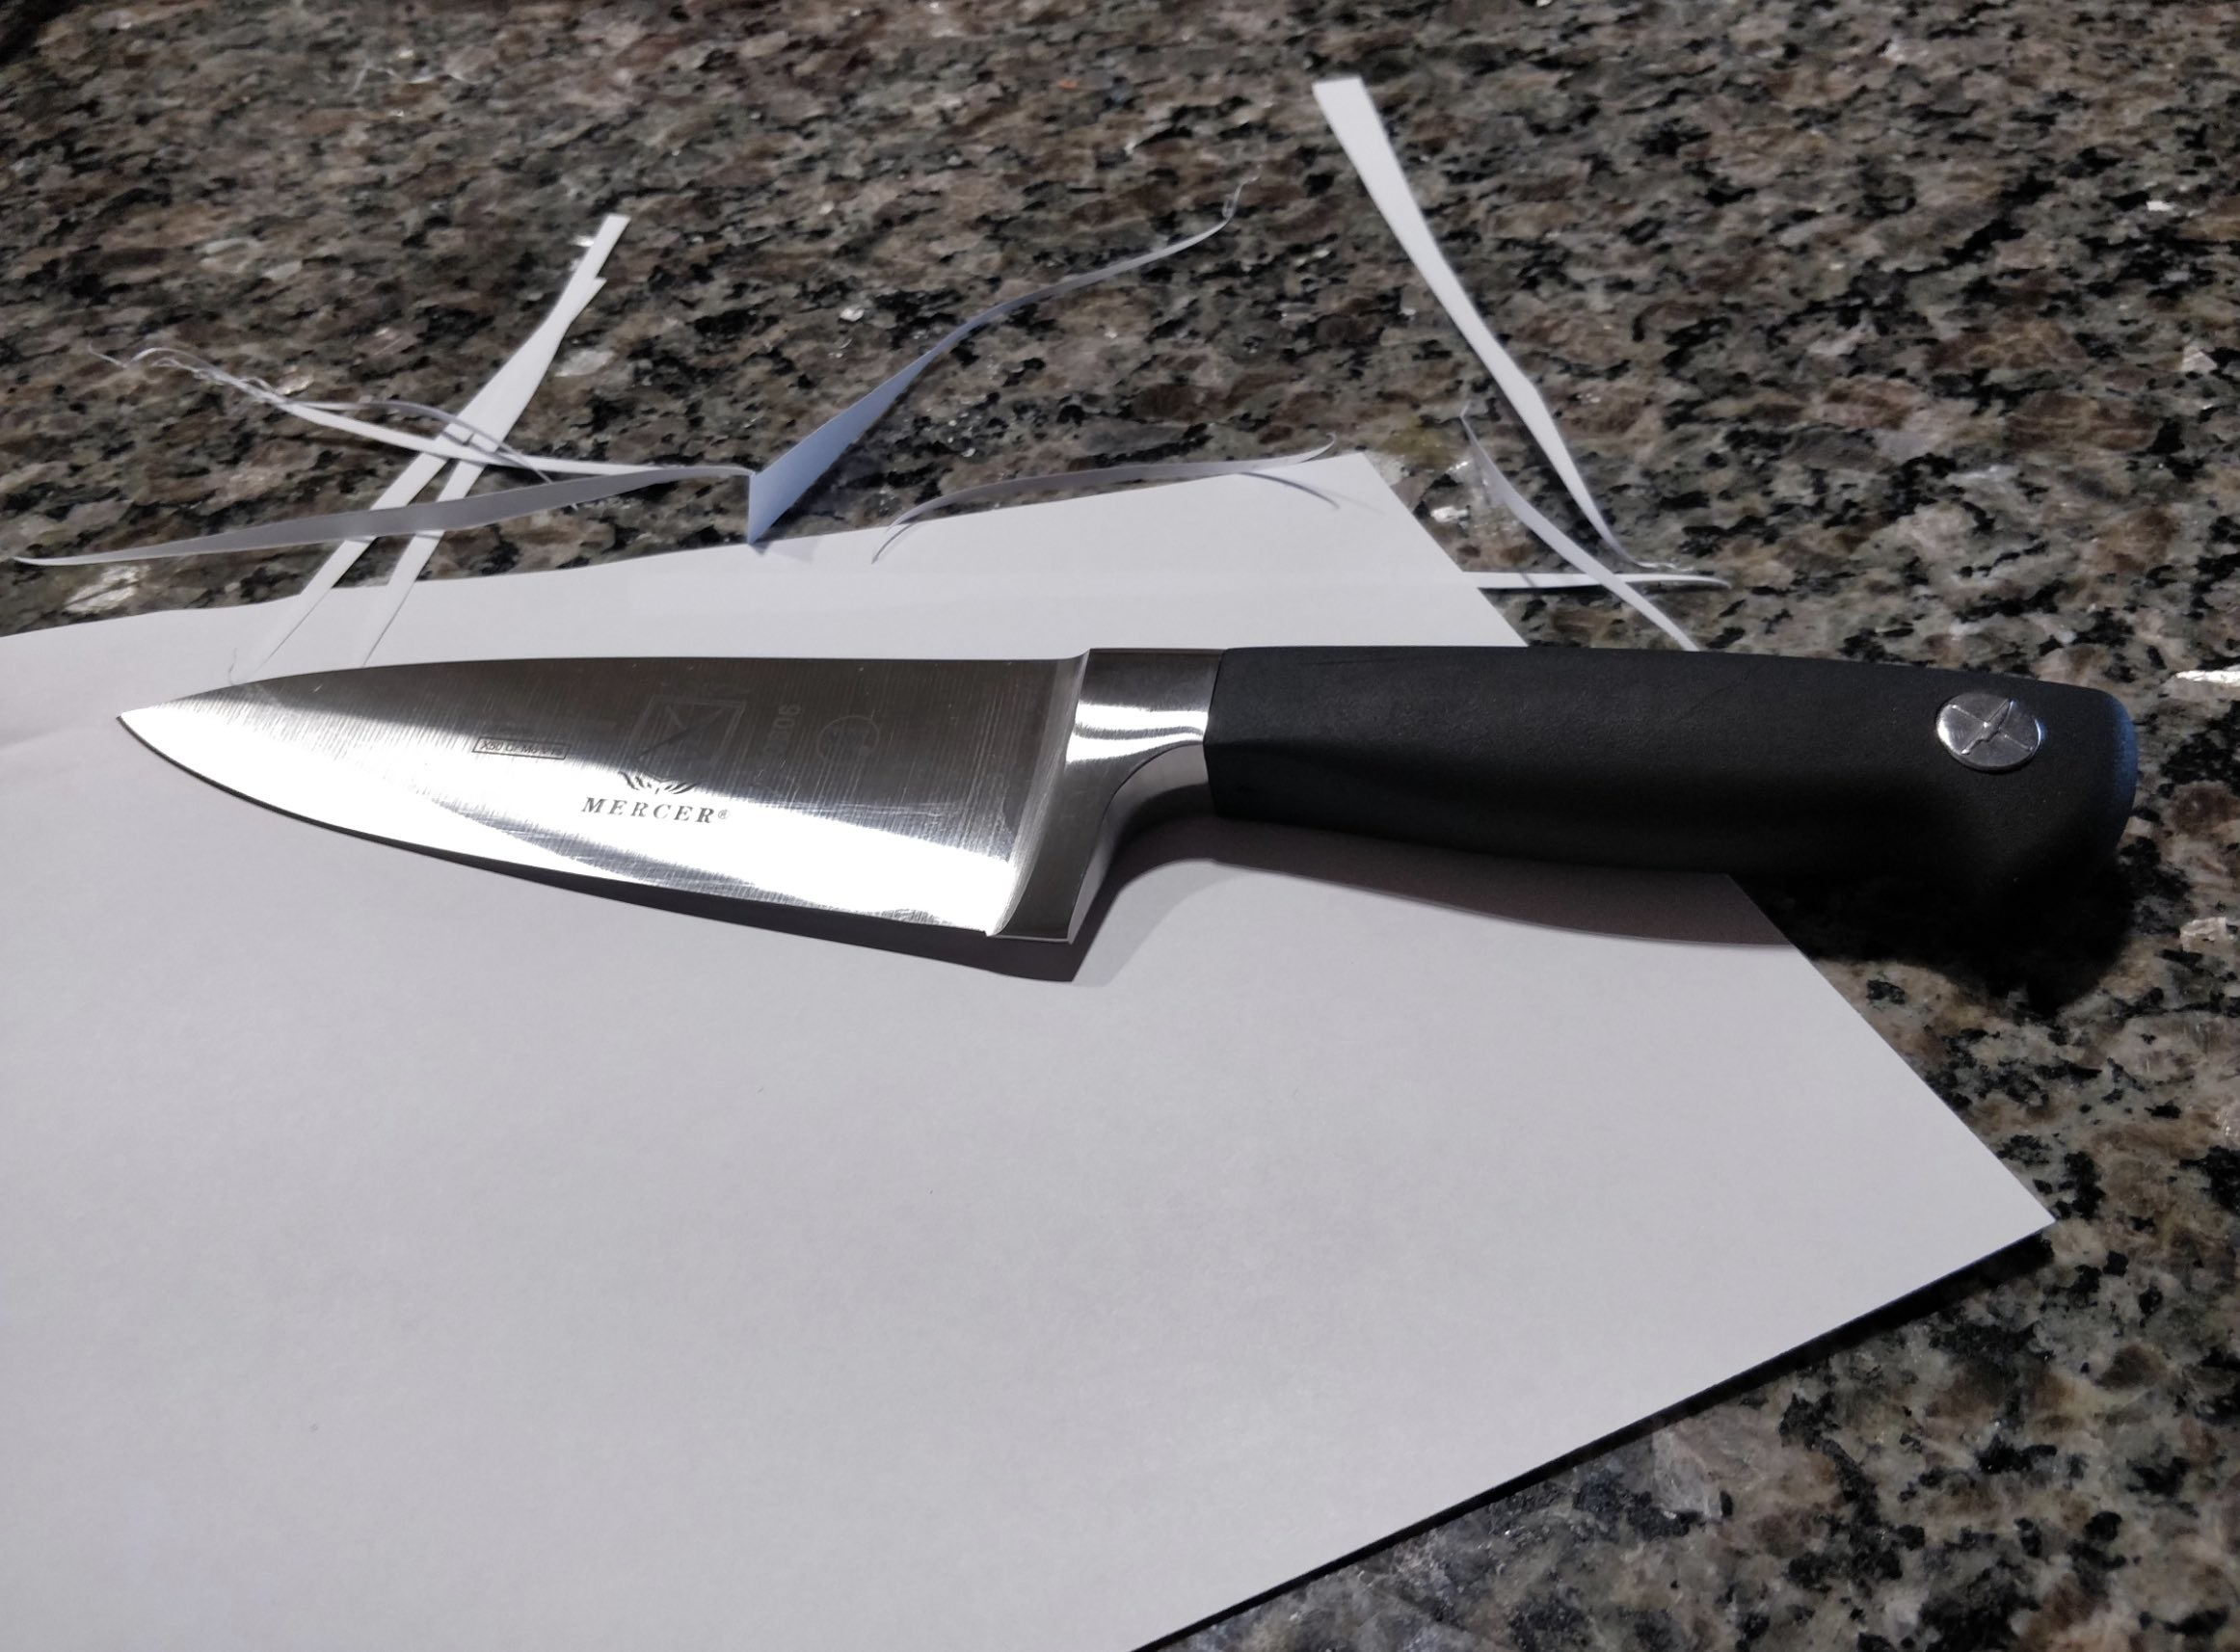 the chef's knife on top of a piece of paper that's been cut with the knife